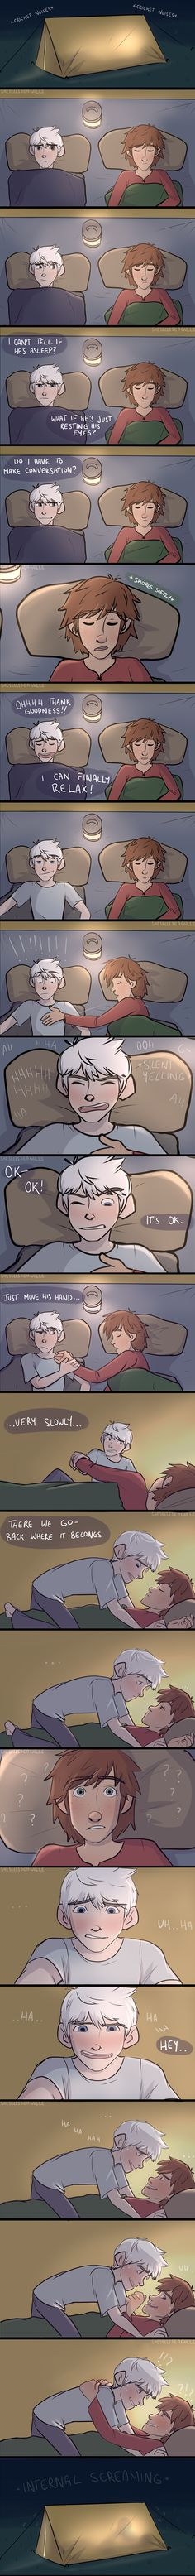 by she-sells-seagulls.deviantart.com | Hiccup Haddock x Jack Frost | Frostcup | Hijack | How To Train Your Dragon | Rise of the Guardians